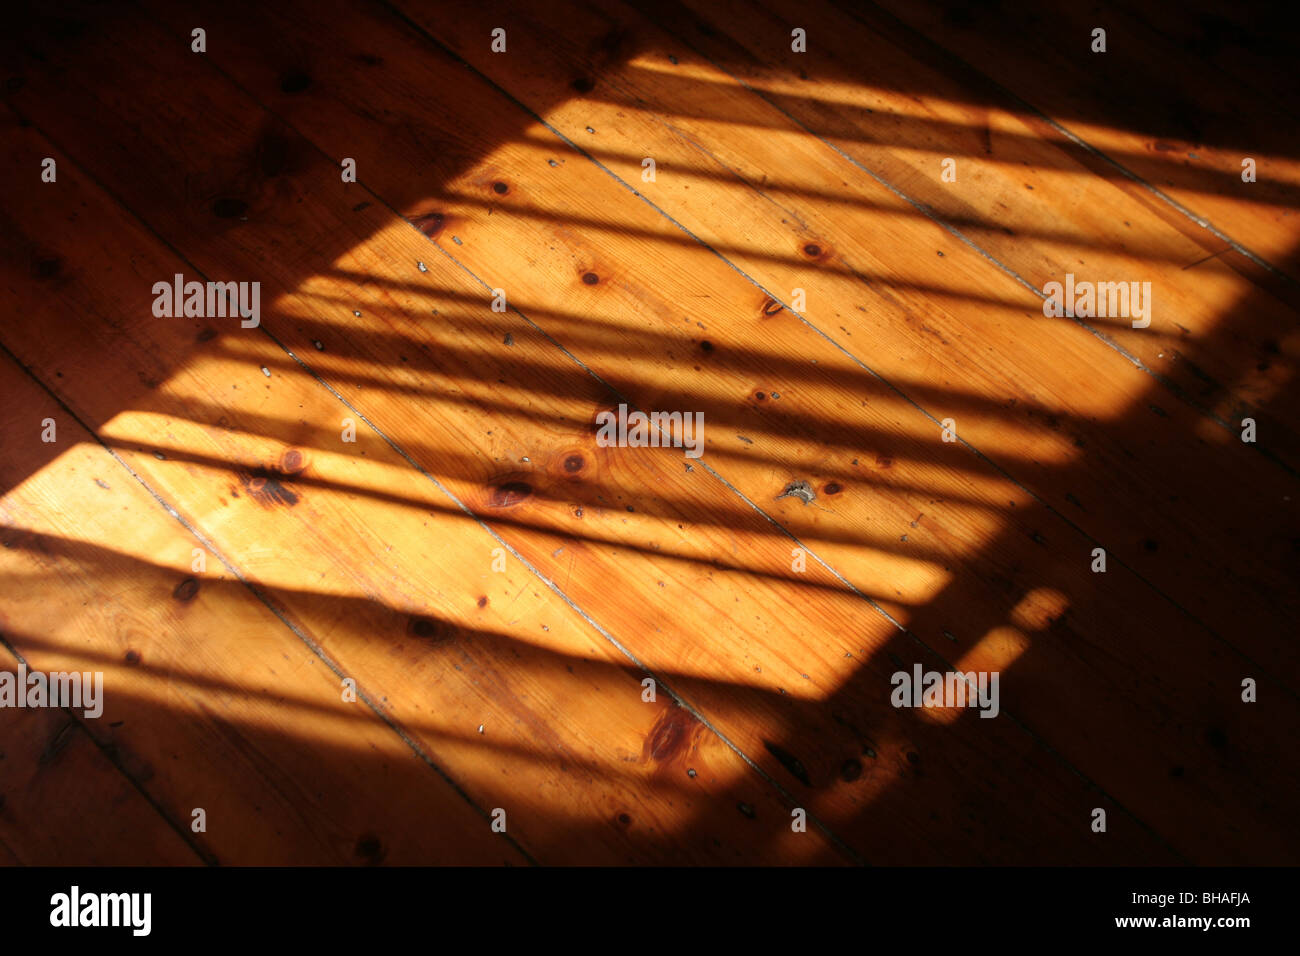 Sunlight falling on wooden polished floorboards, creating shadows. - Stock Image